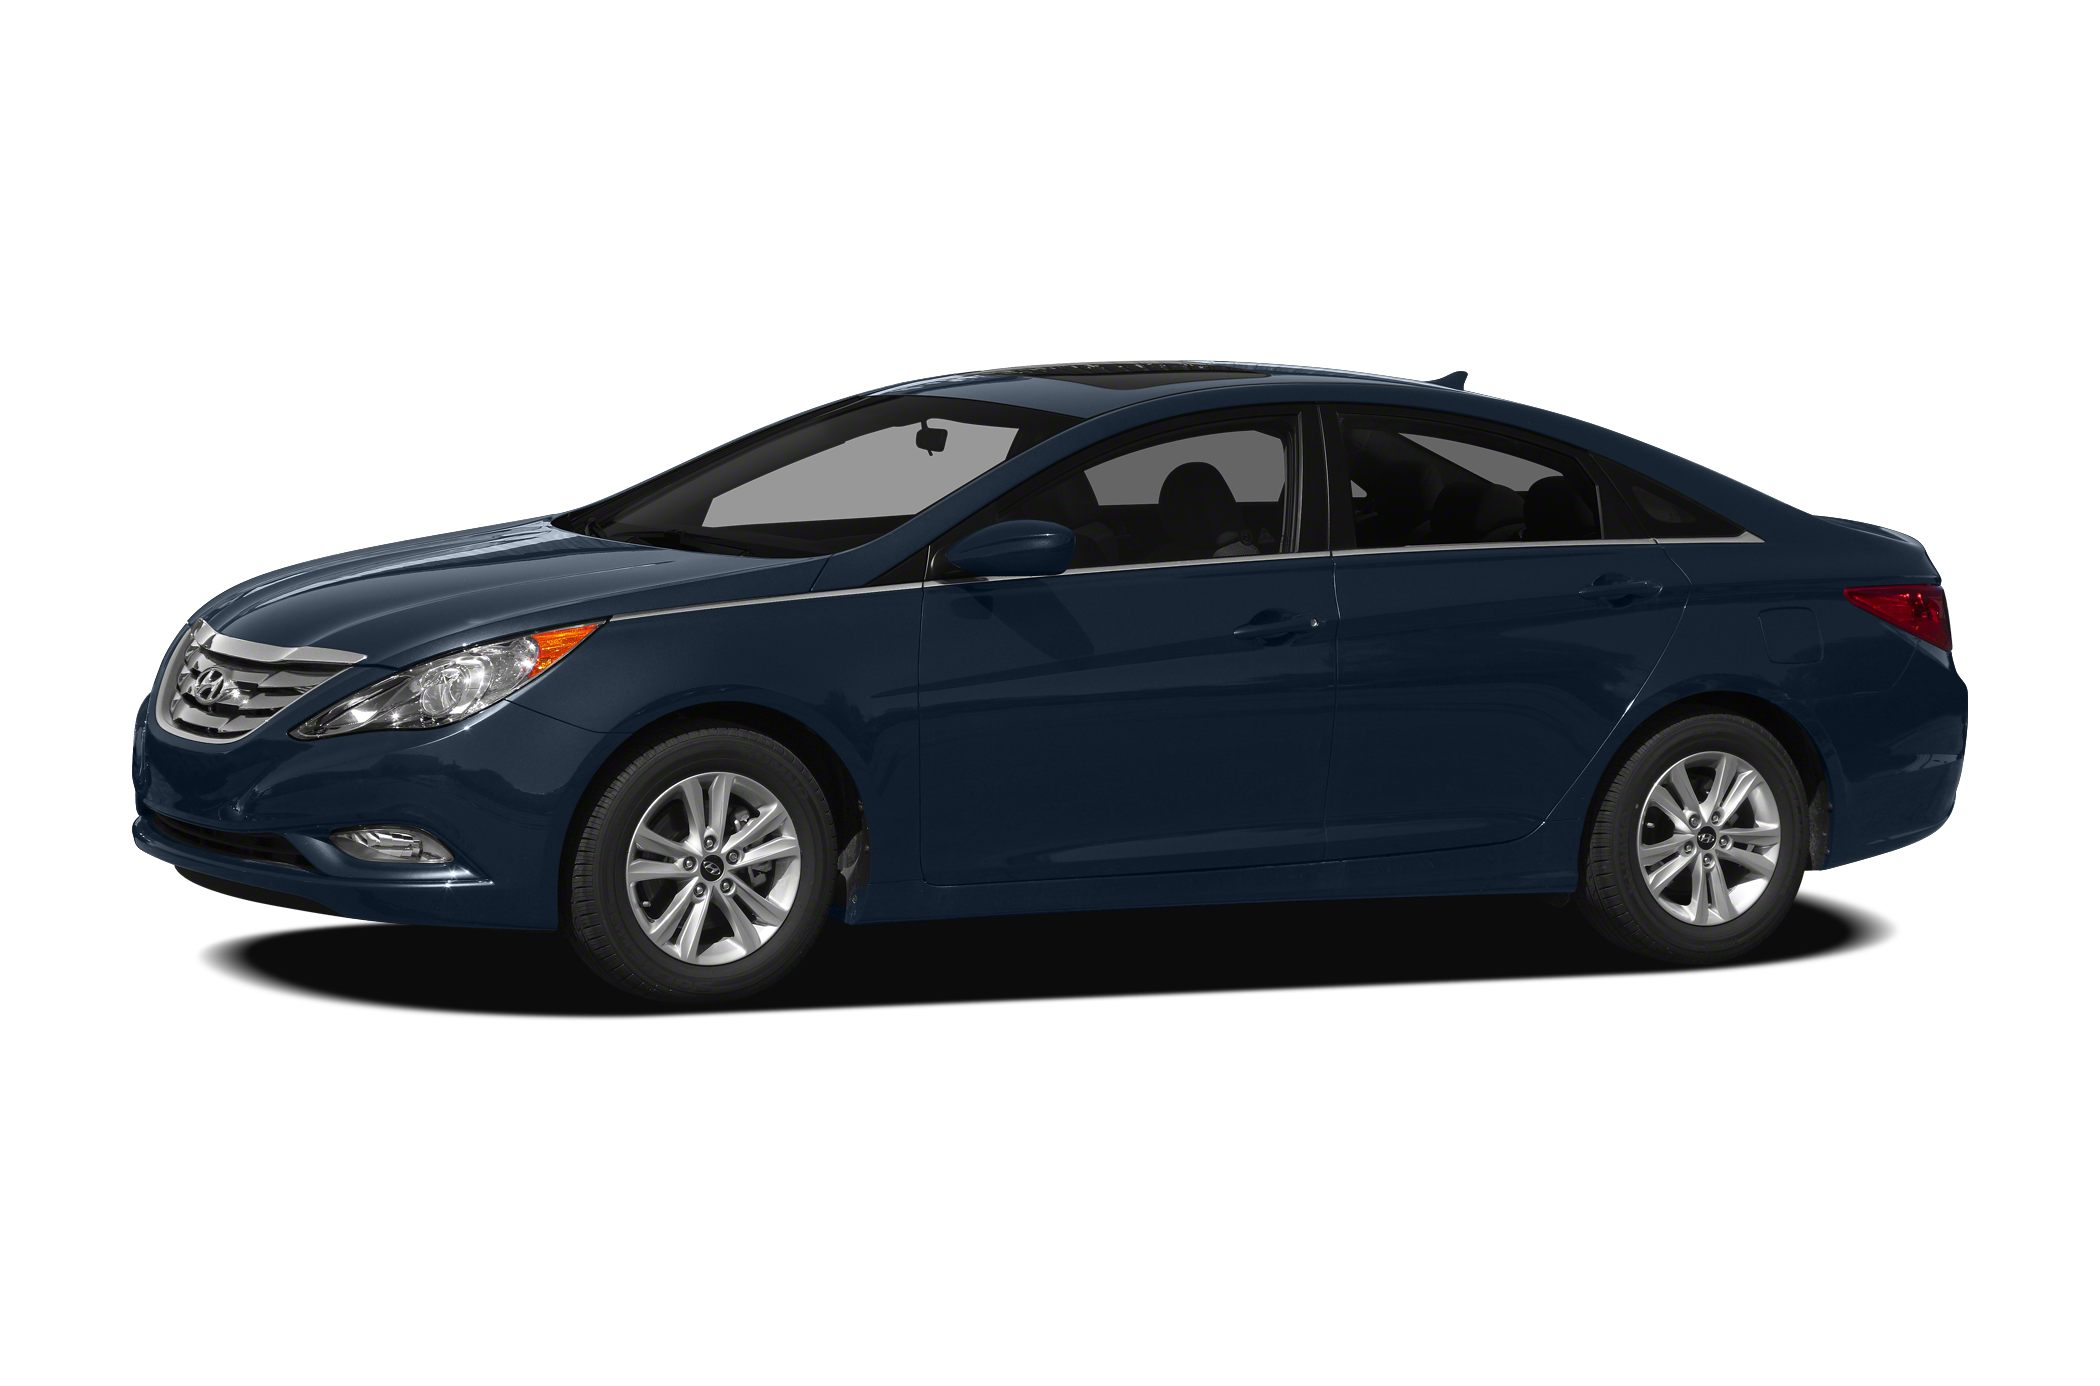 2011 Hyundai Sonata GLS Sedan for sale in Glen Burnie for $14,850 with 43,016 miles